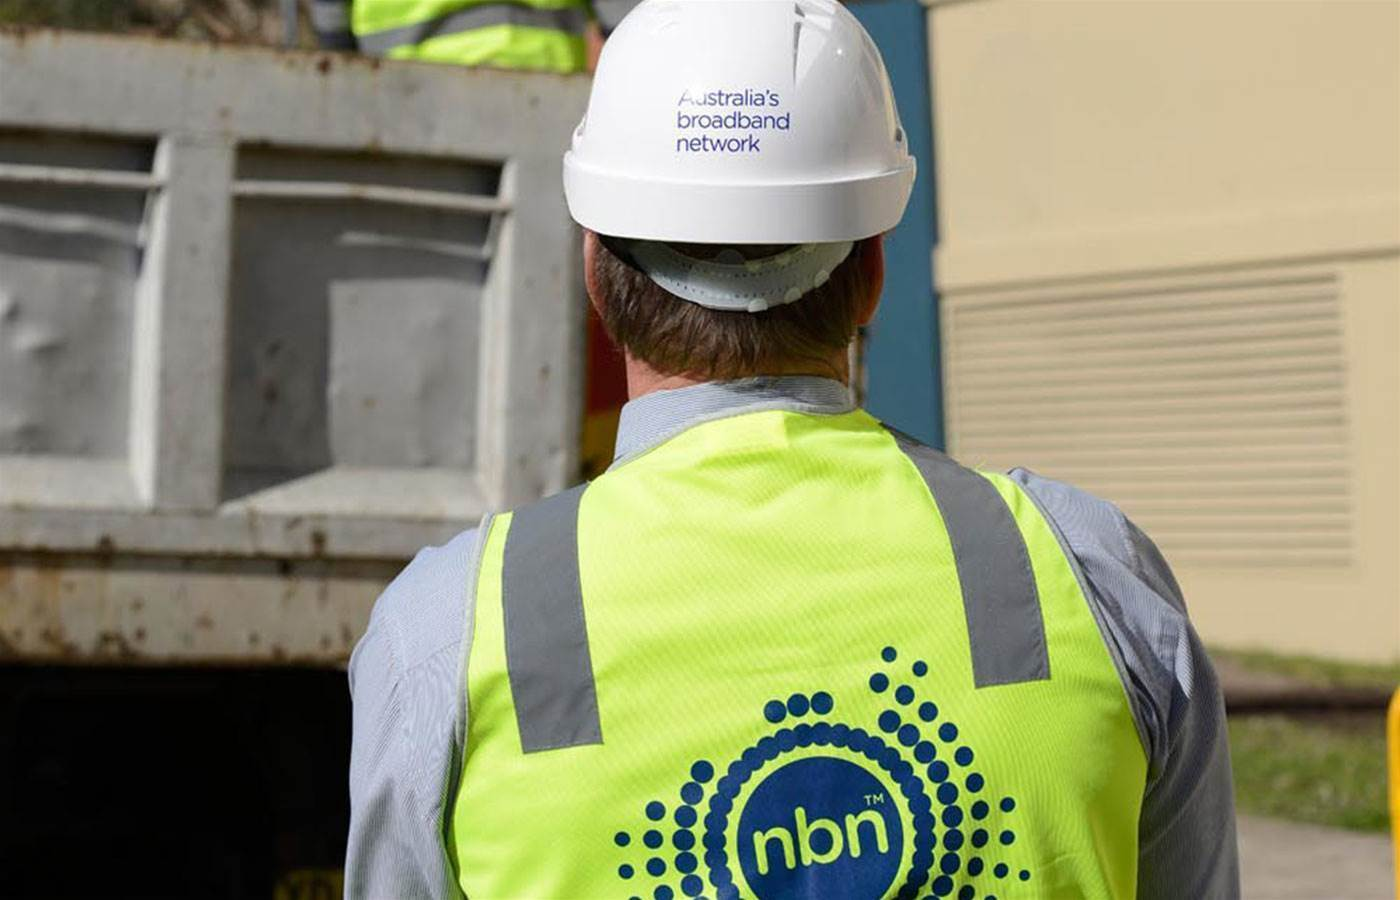 NBN competition heats up as telcos seek more POIs